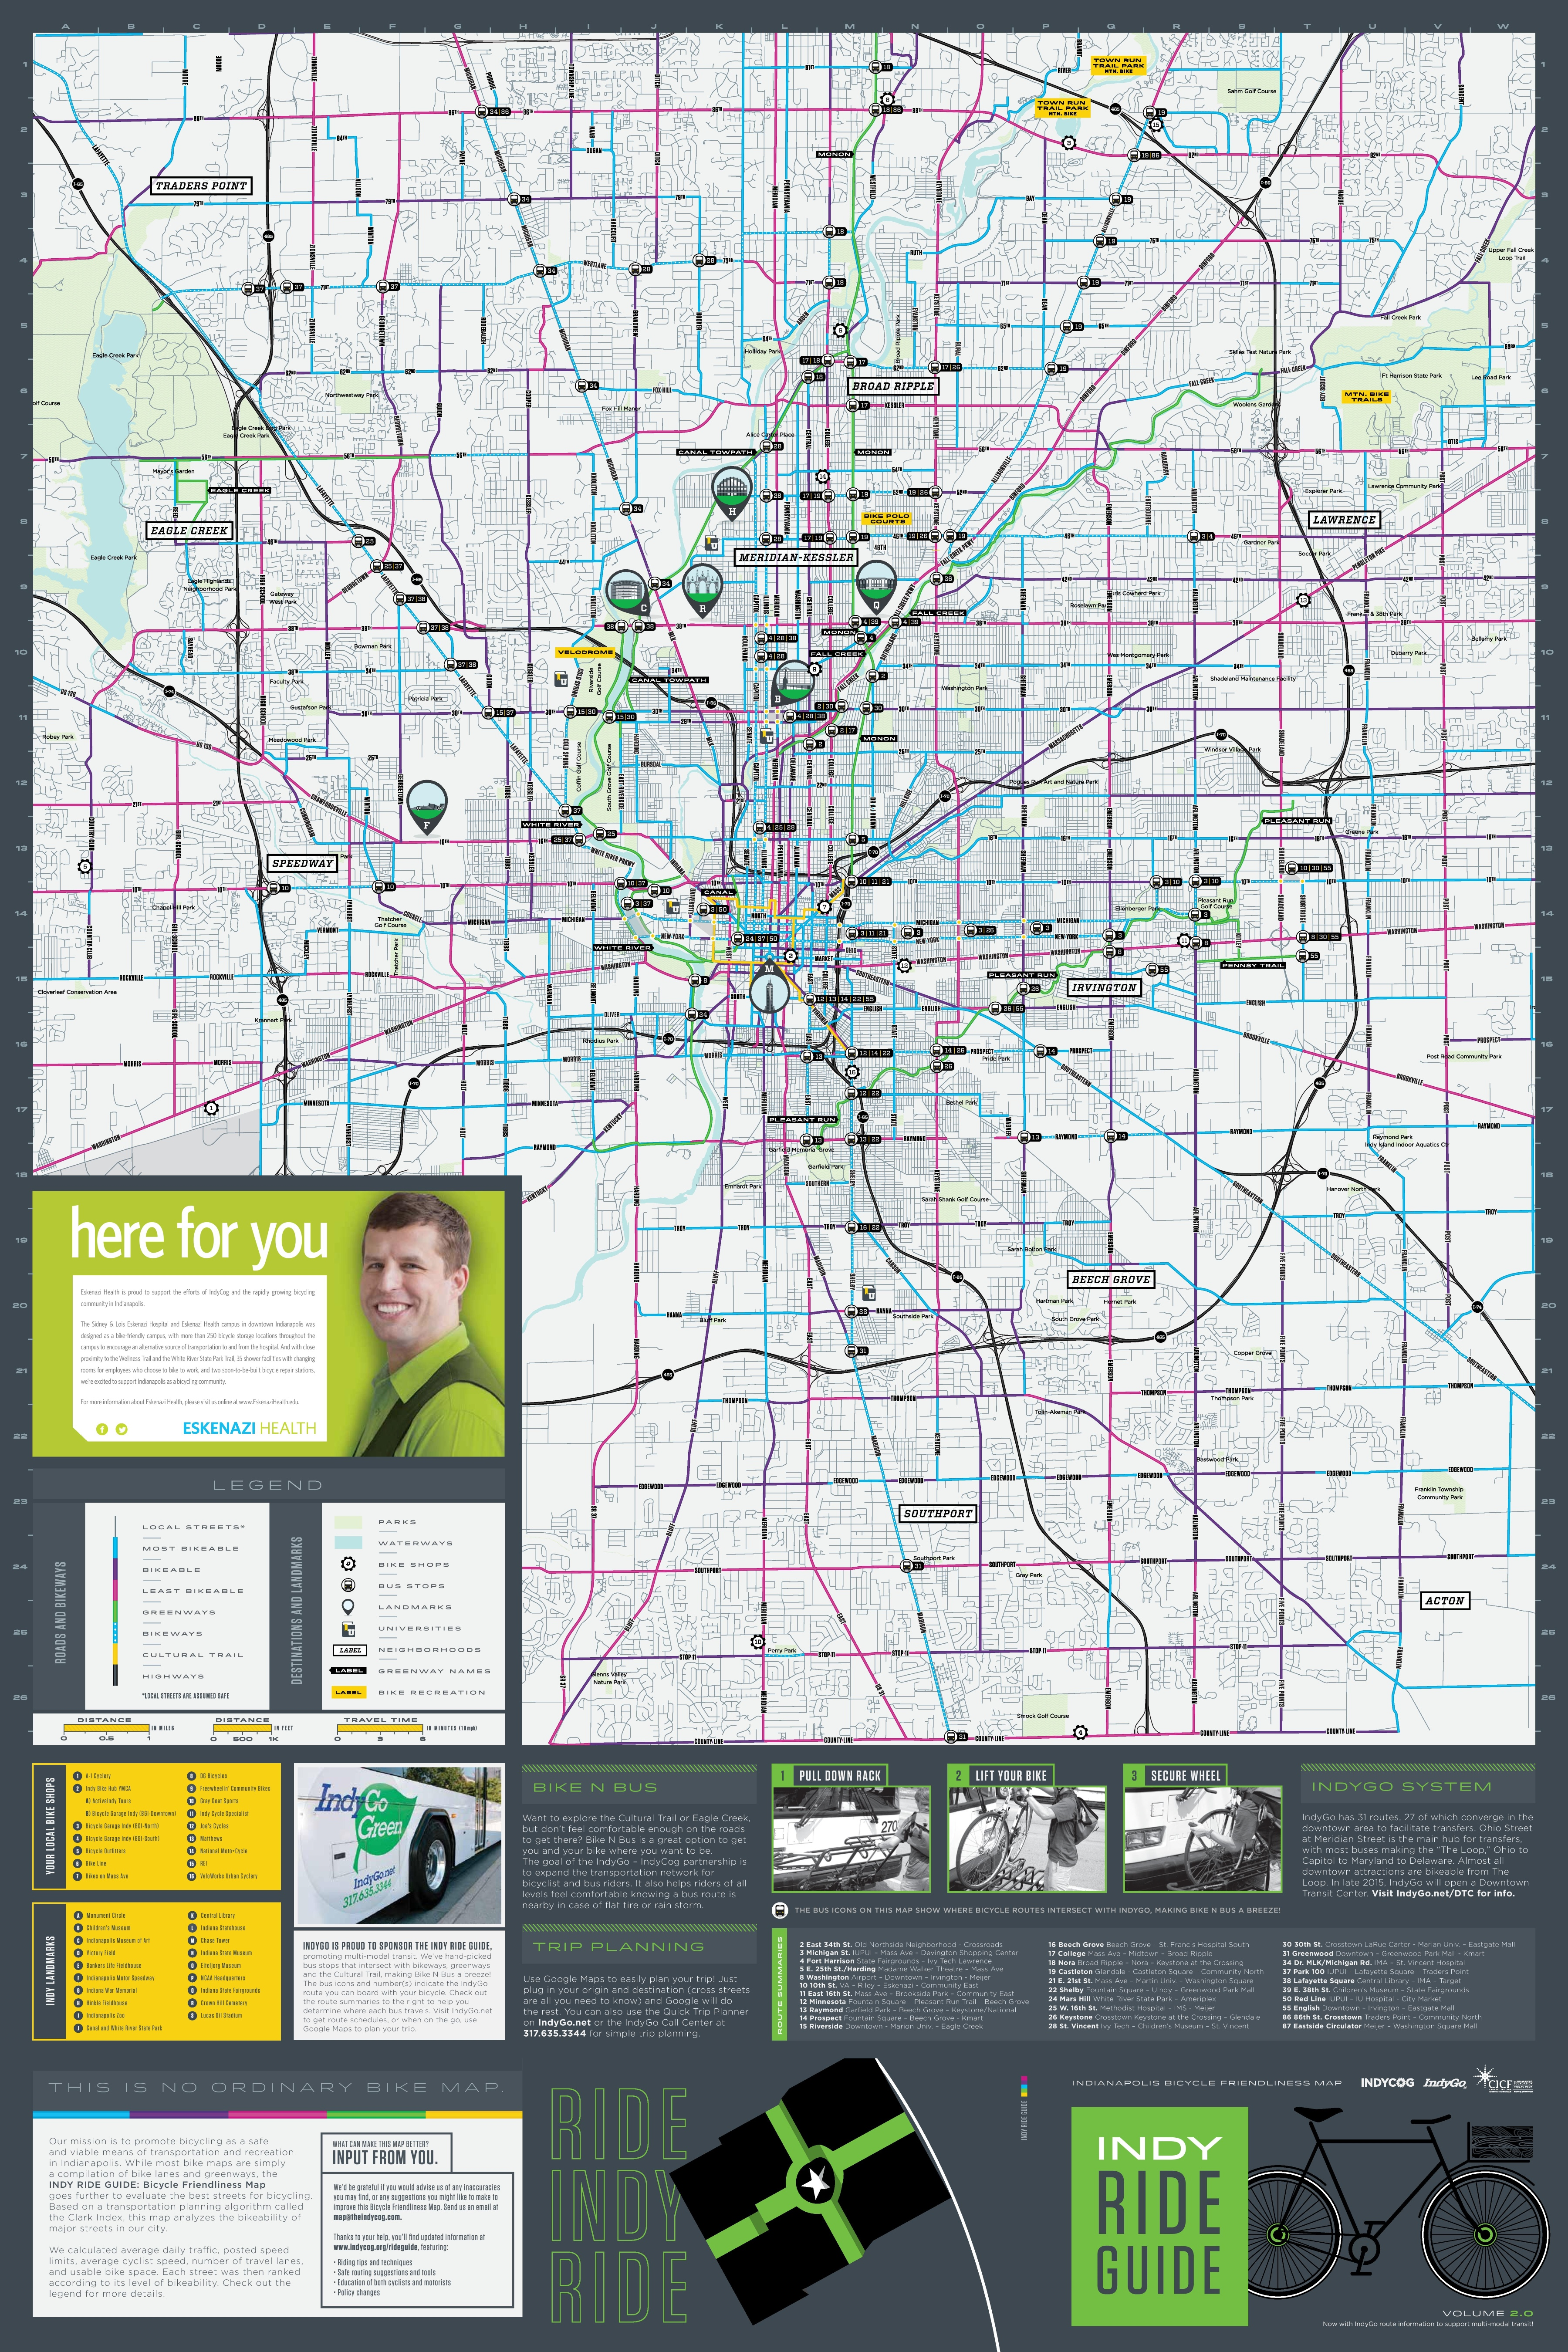 Indianapolis ride map